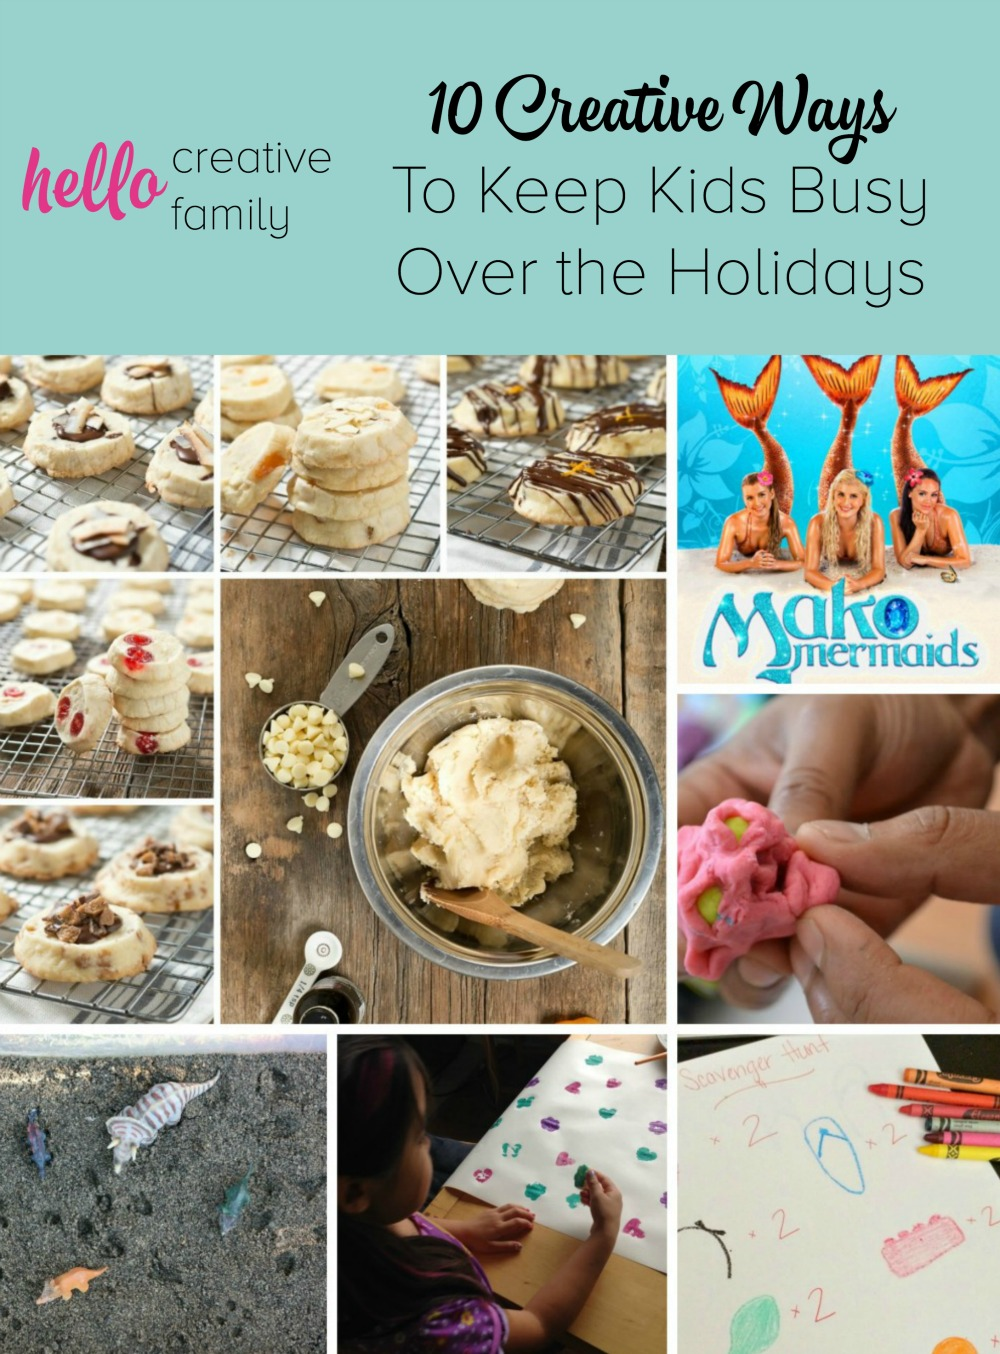 10 Creative Ways to Keep Kids Busy Over the Holidays